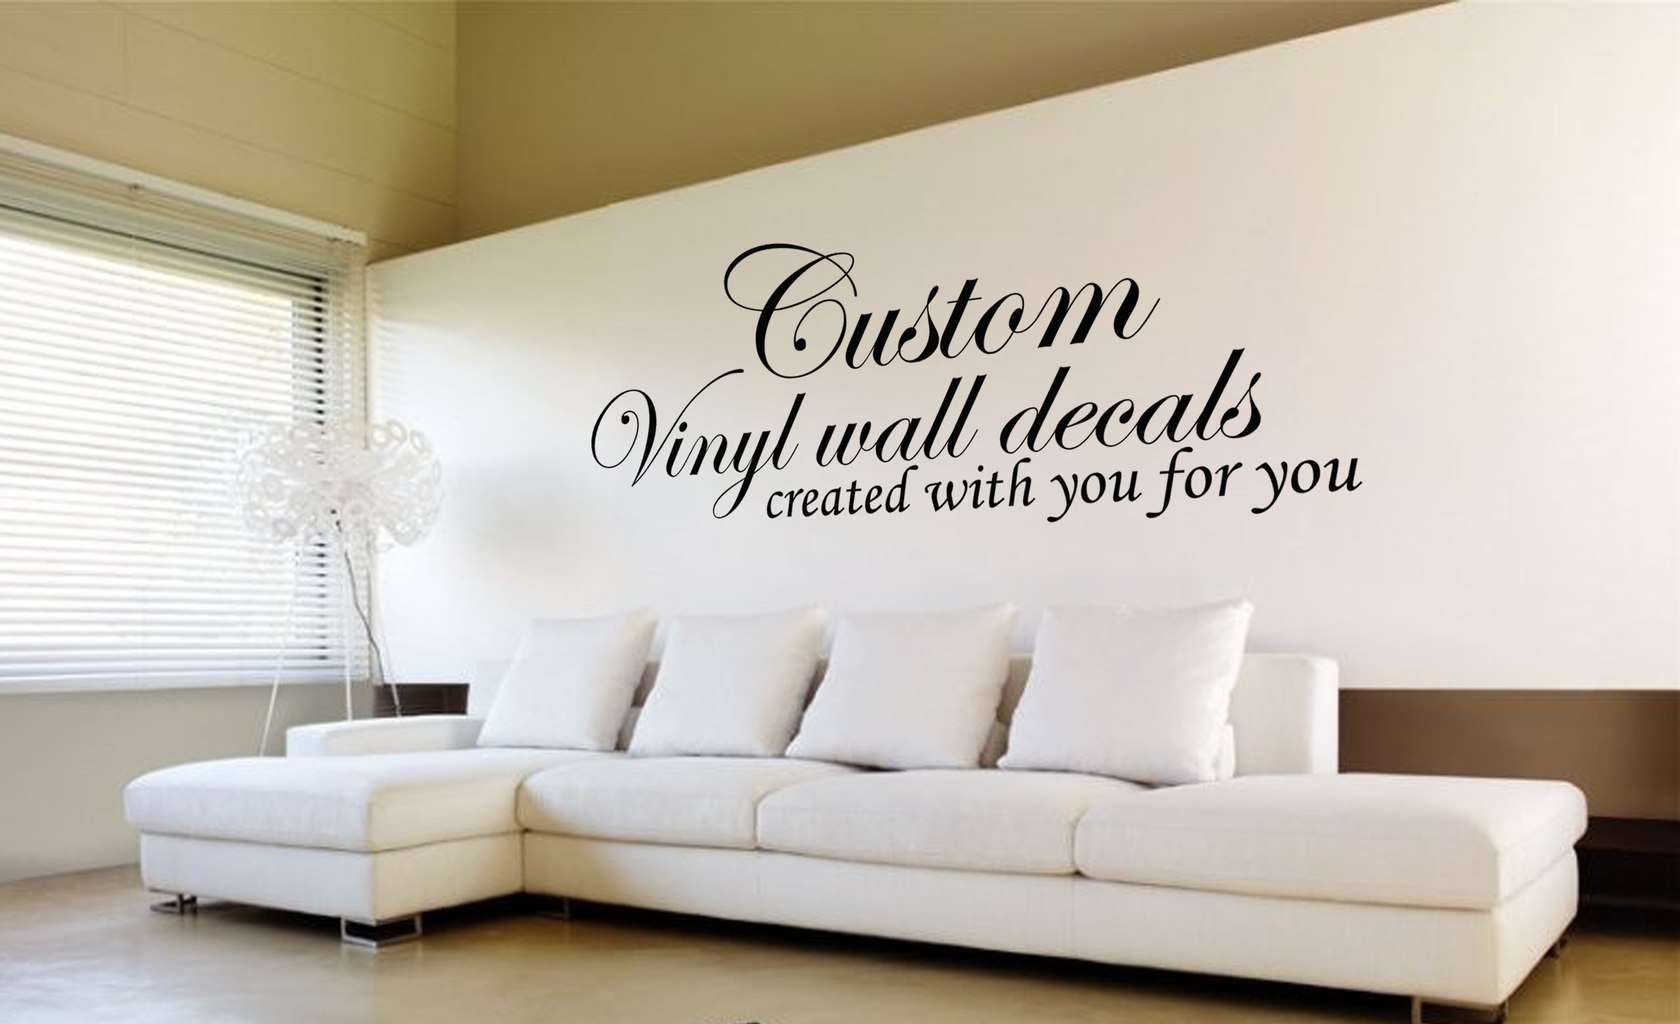 Design your own quote